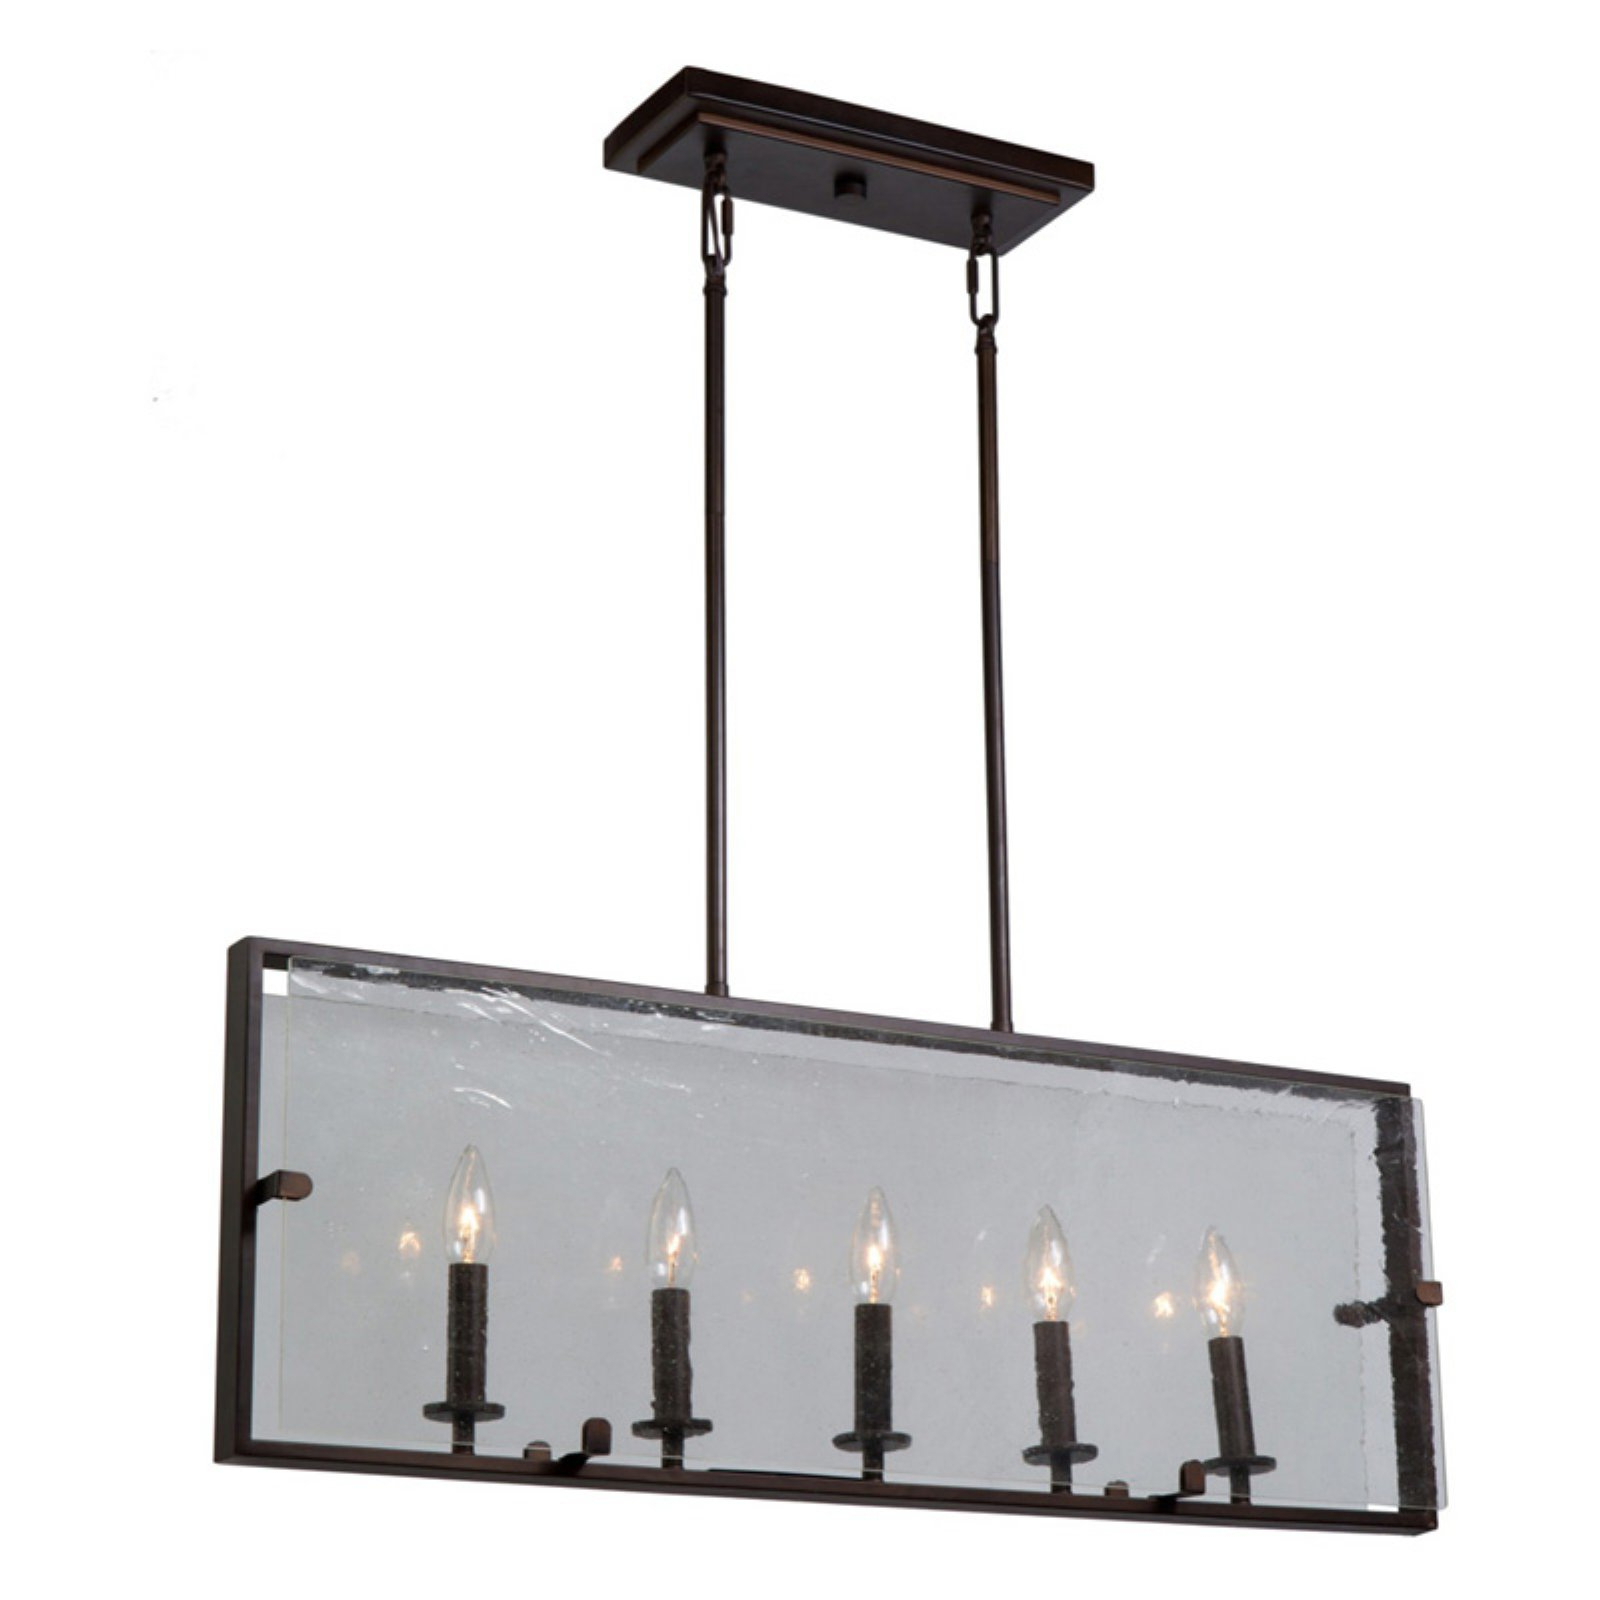 Odie 8 Light Kitchen Island Square / Rectangle Pendants Pertaining To Most Recently Released Artcraft Harbor Point Ac10304 Kitchen Island Light Oil (View 15 of 25)